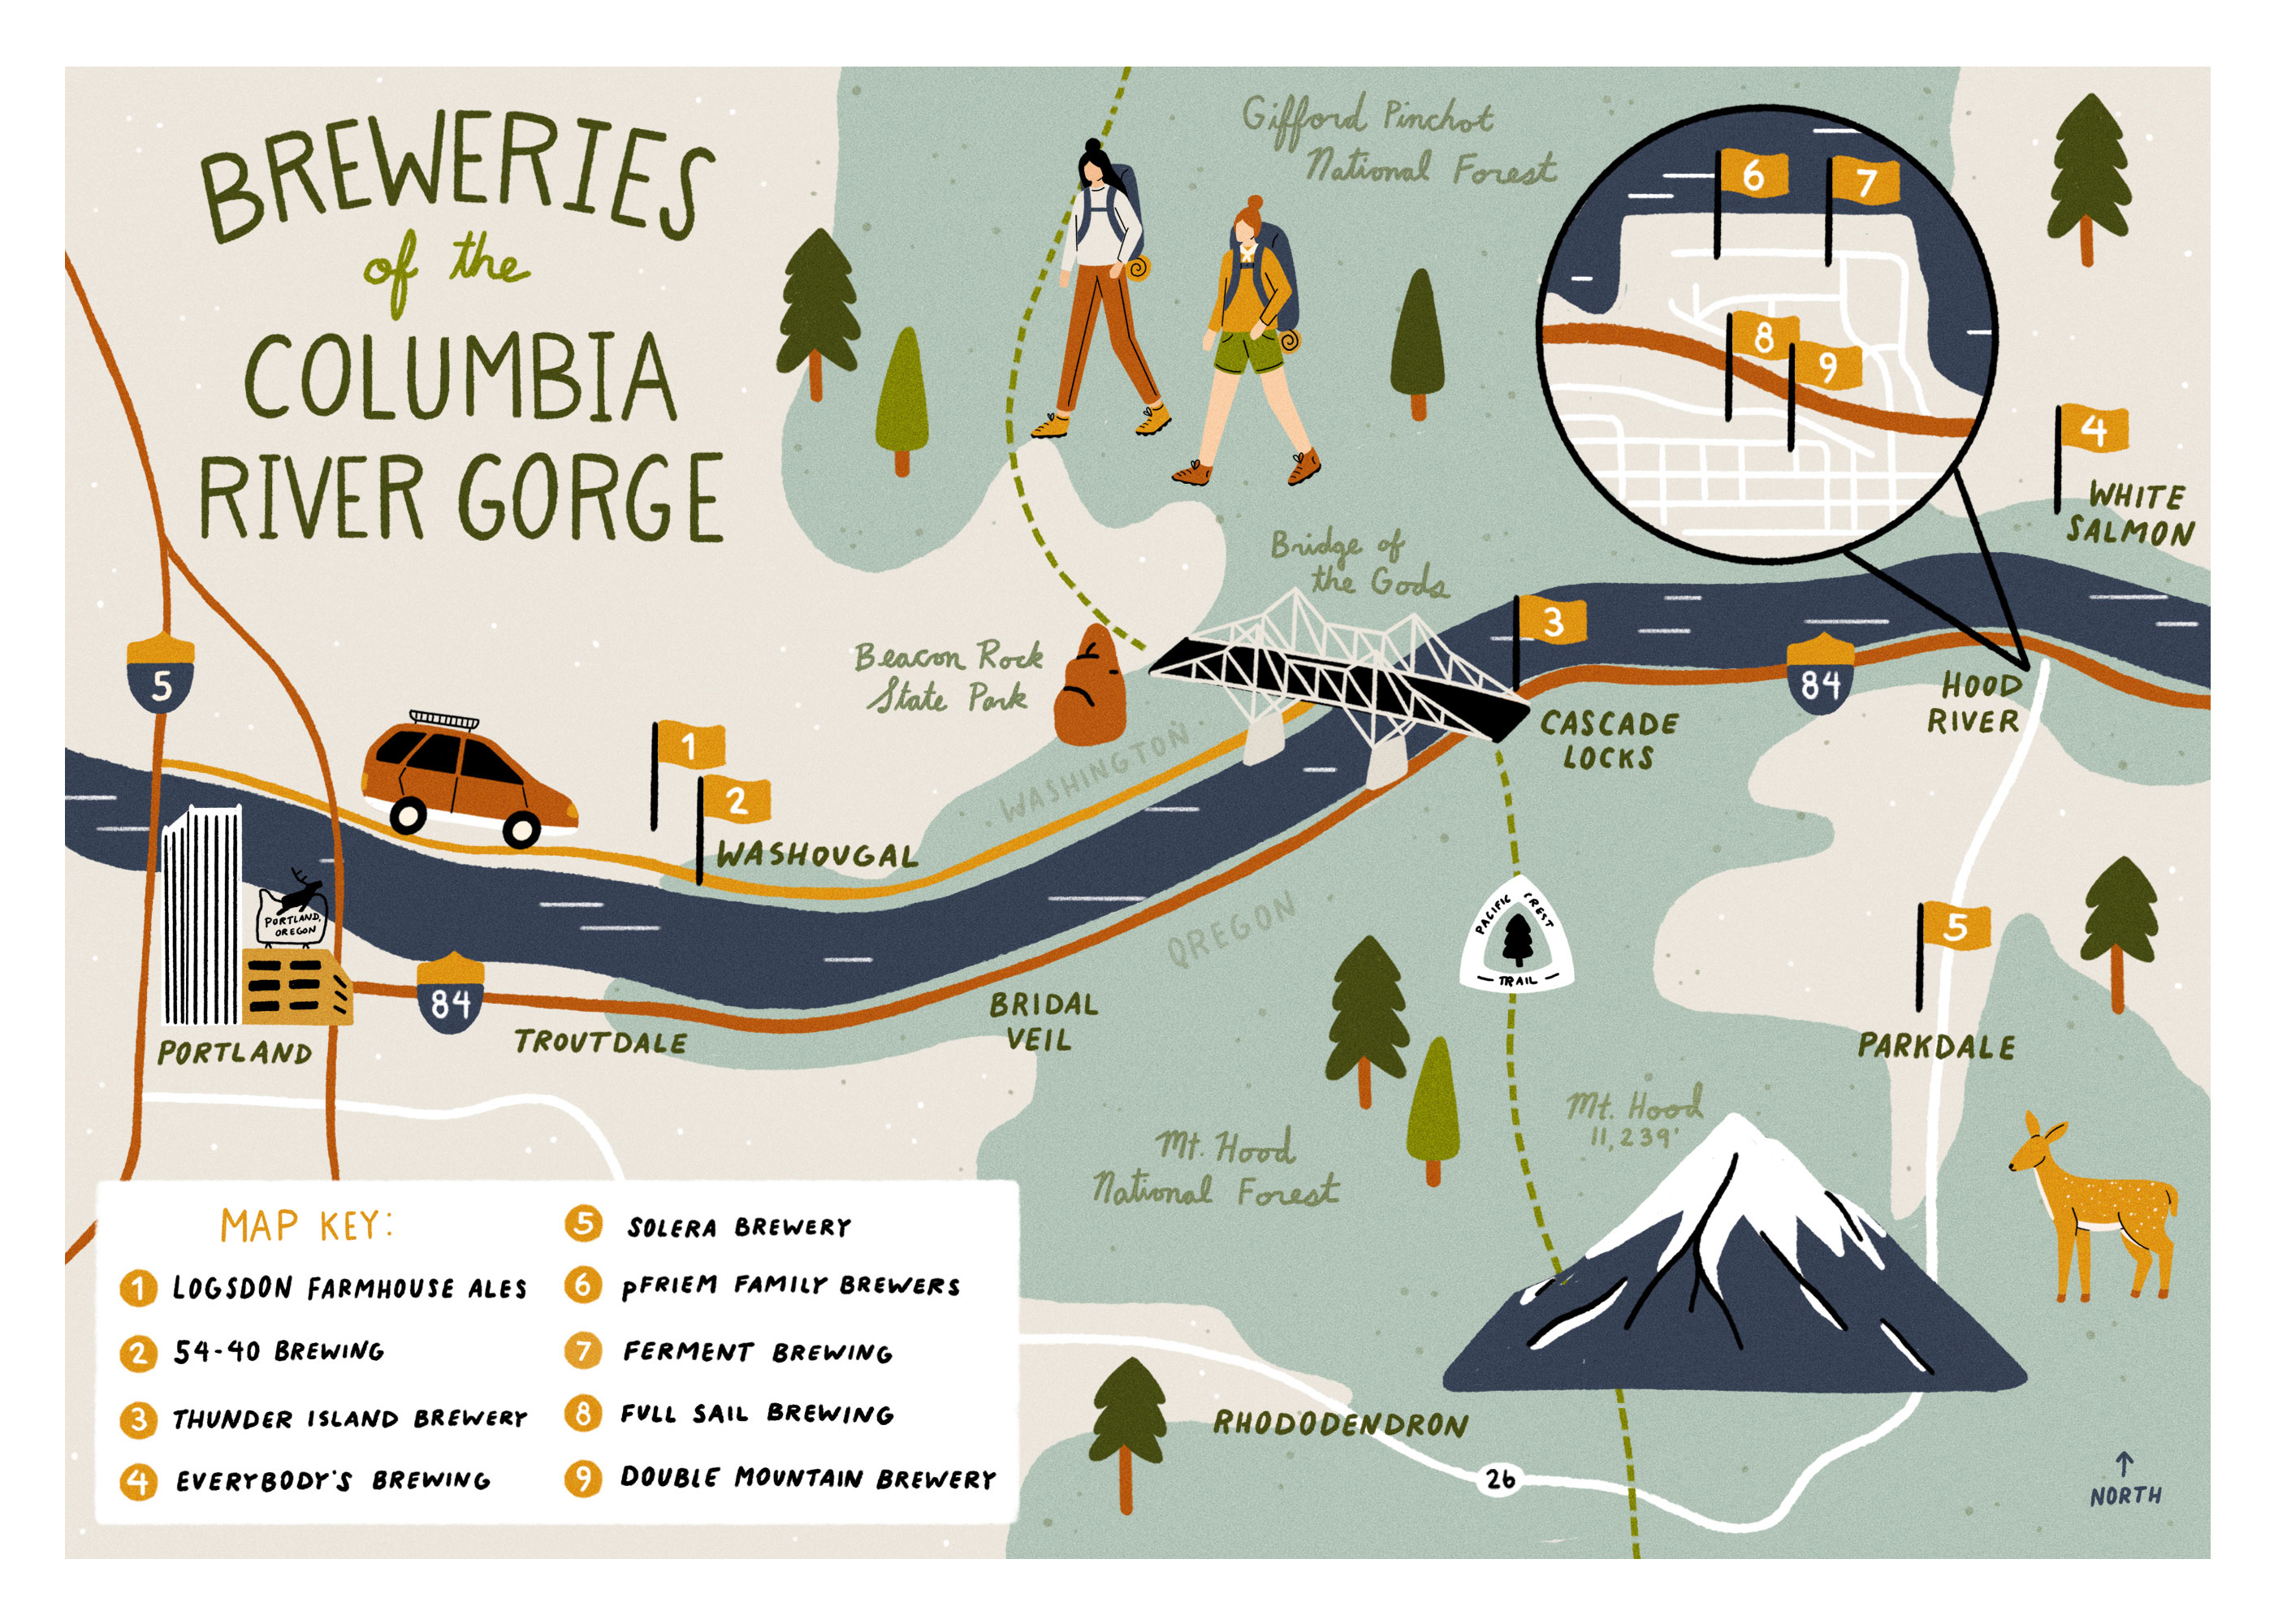 A Craft Beer Journey Through The Columbia River Gorge October